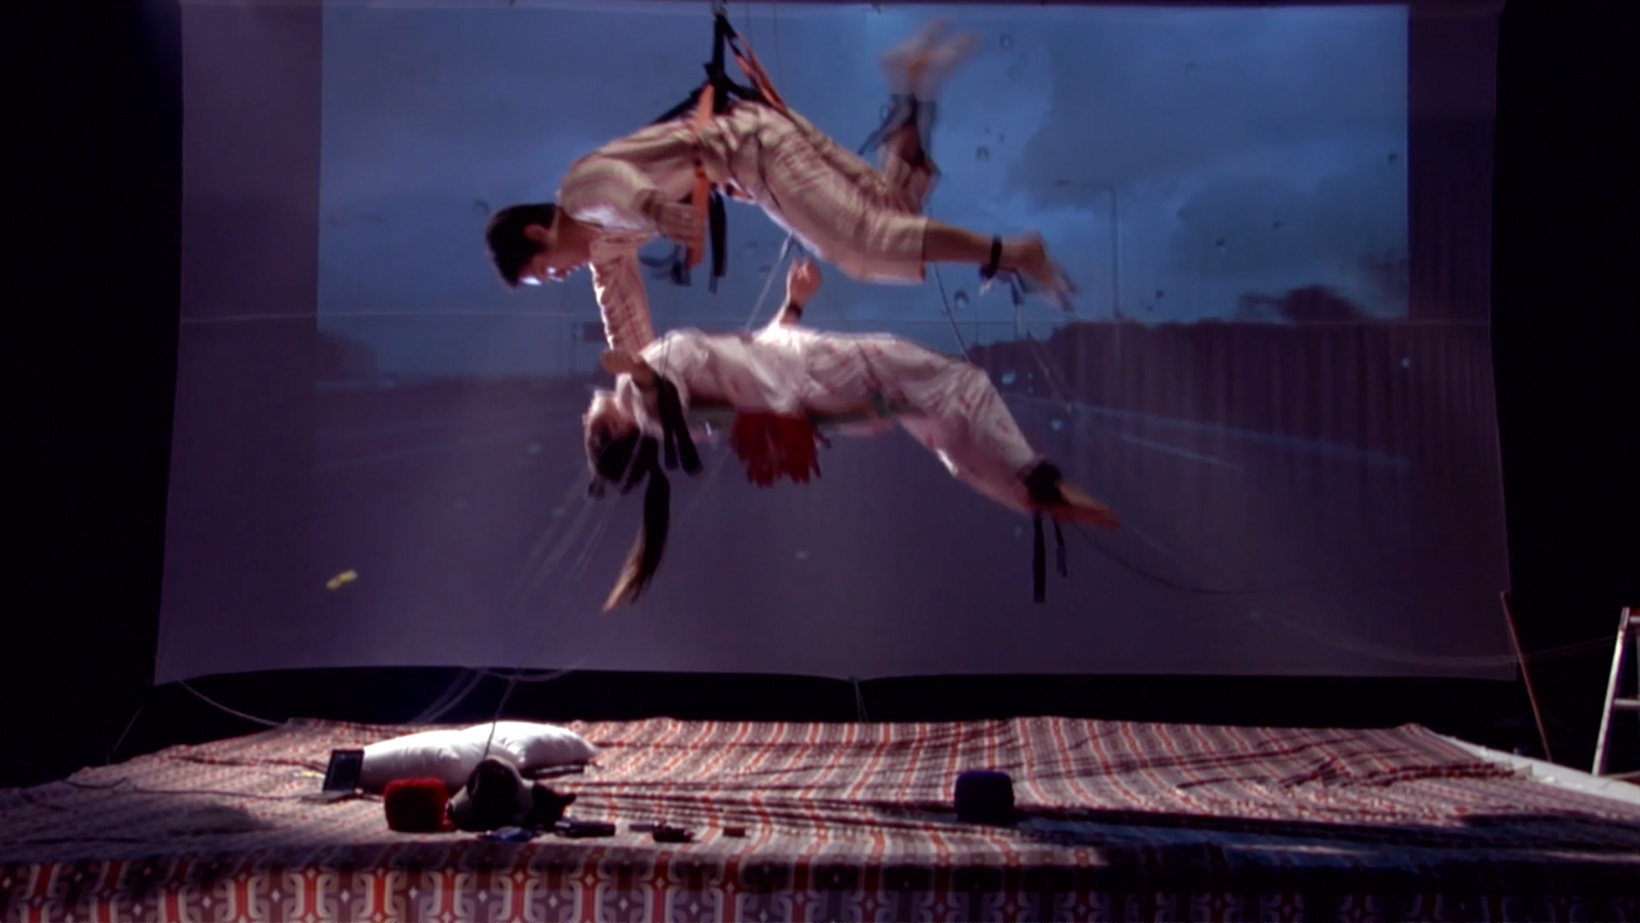 Koo Donghee, Still from Static Electricity of Cat's Cradle, 2007, video. Courtesy of the artist and Jane Lombard Gallery.